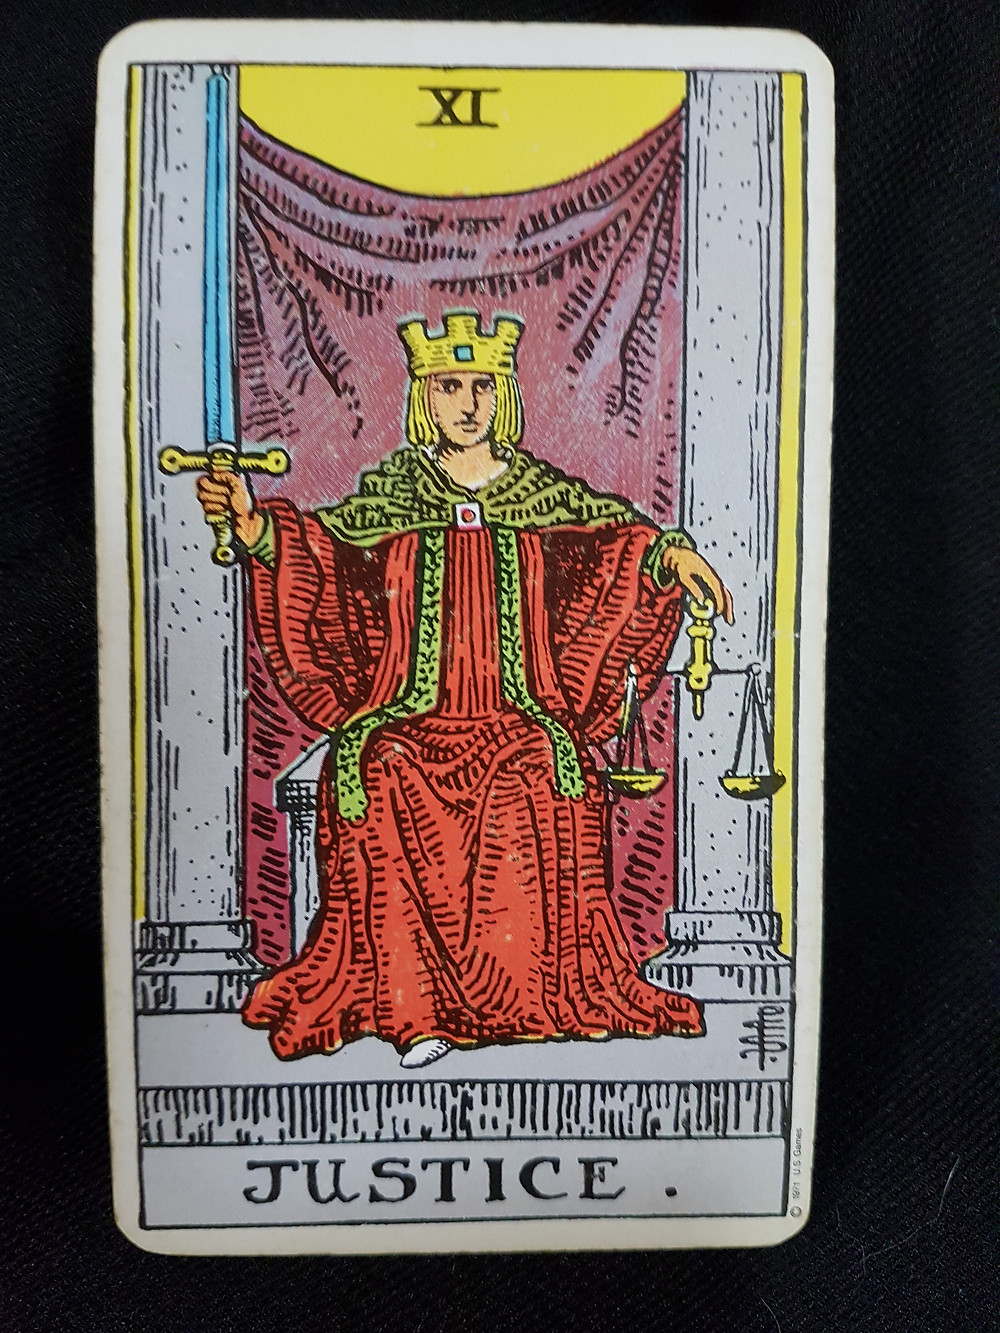 The Justice Card No 11 - lynsreadings.com